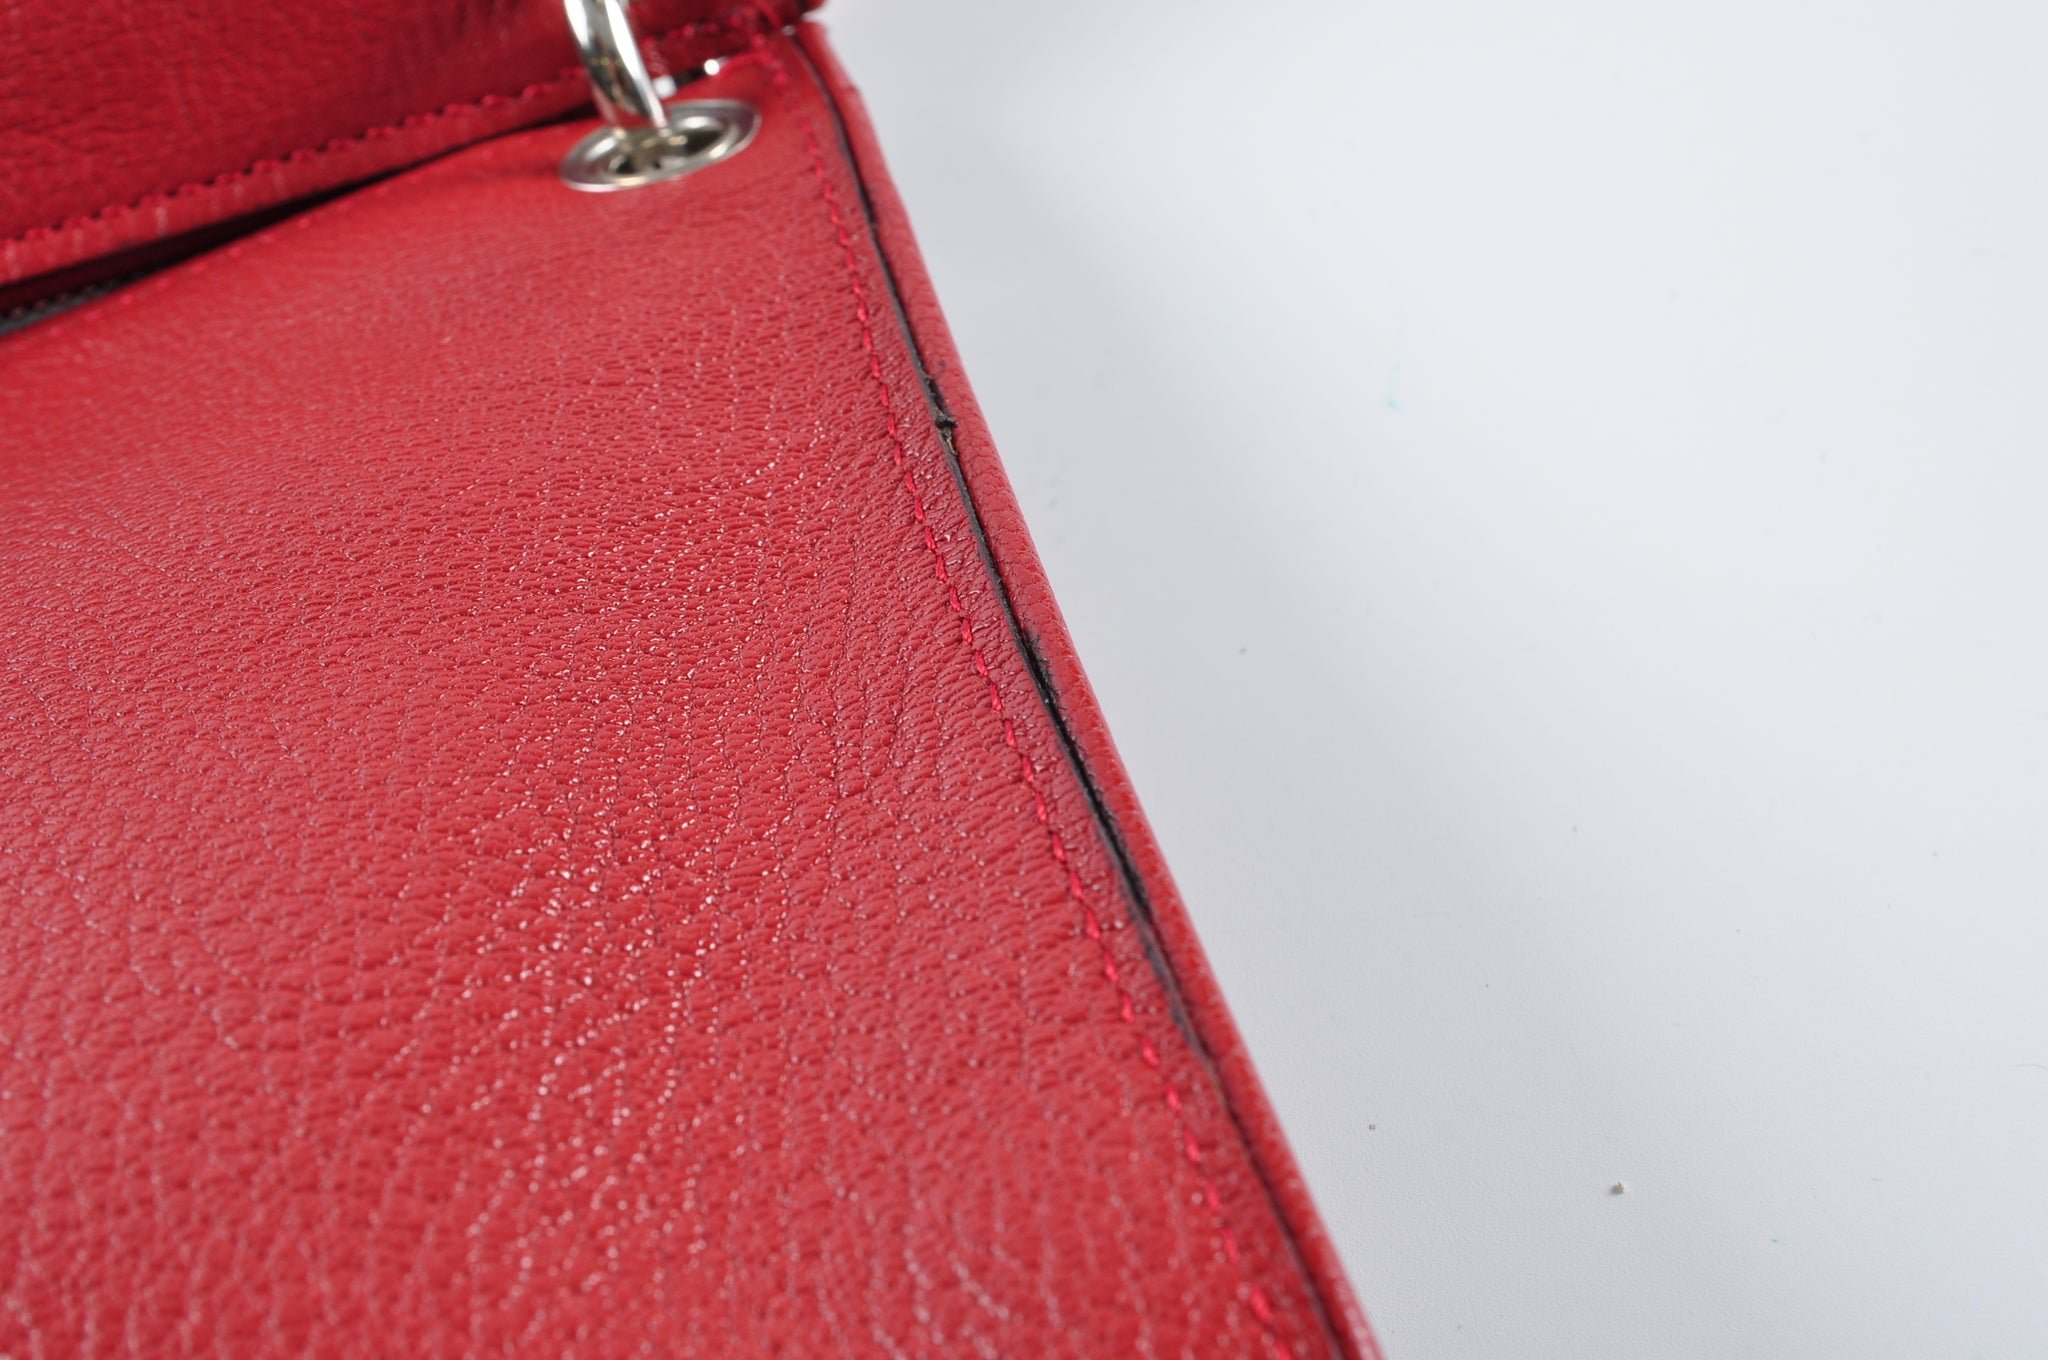 Marni Bandoleer Crossbody Bag in Red Grained Leather